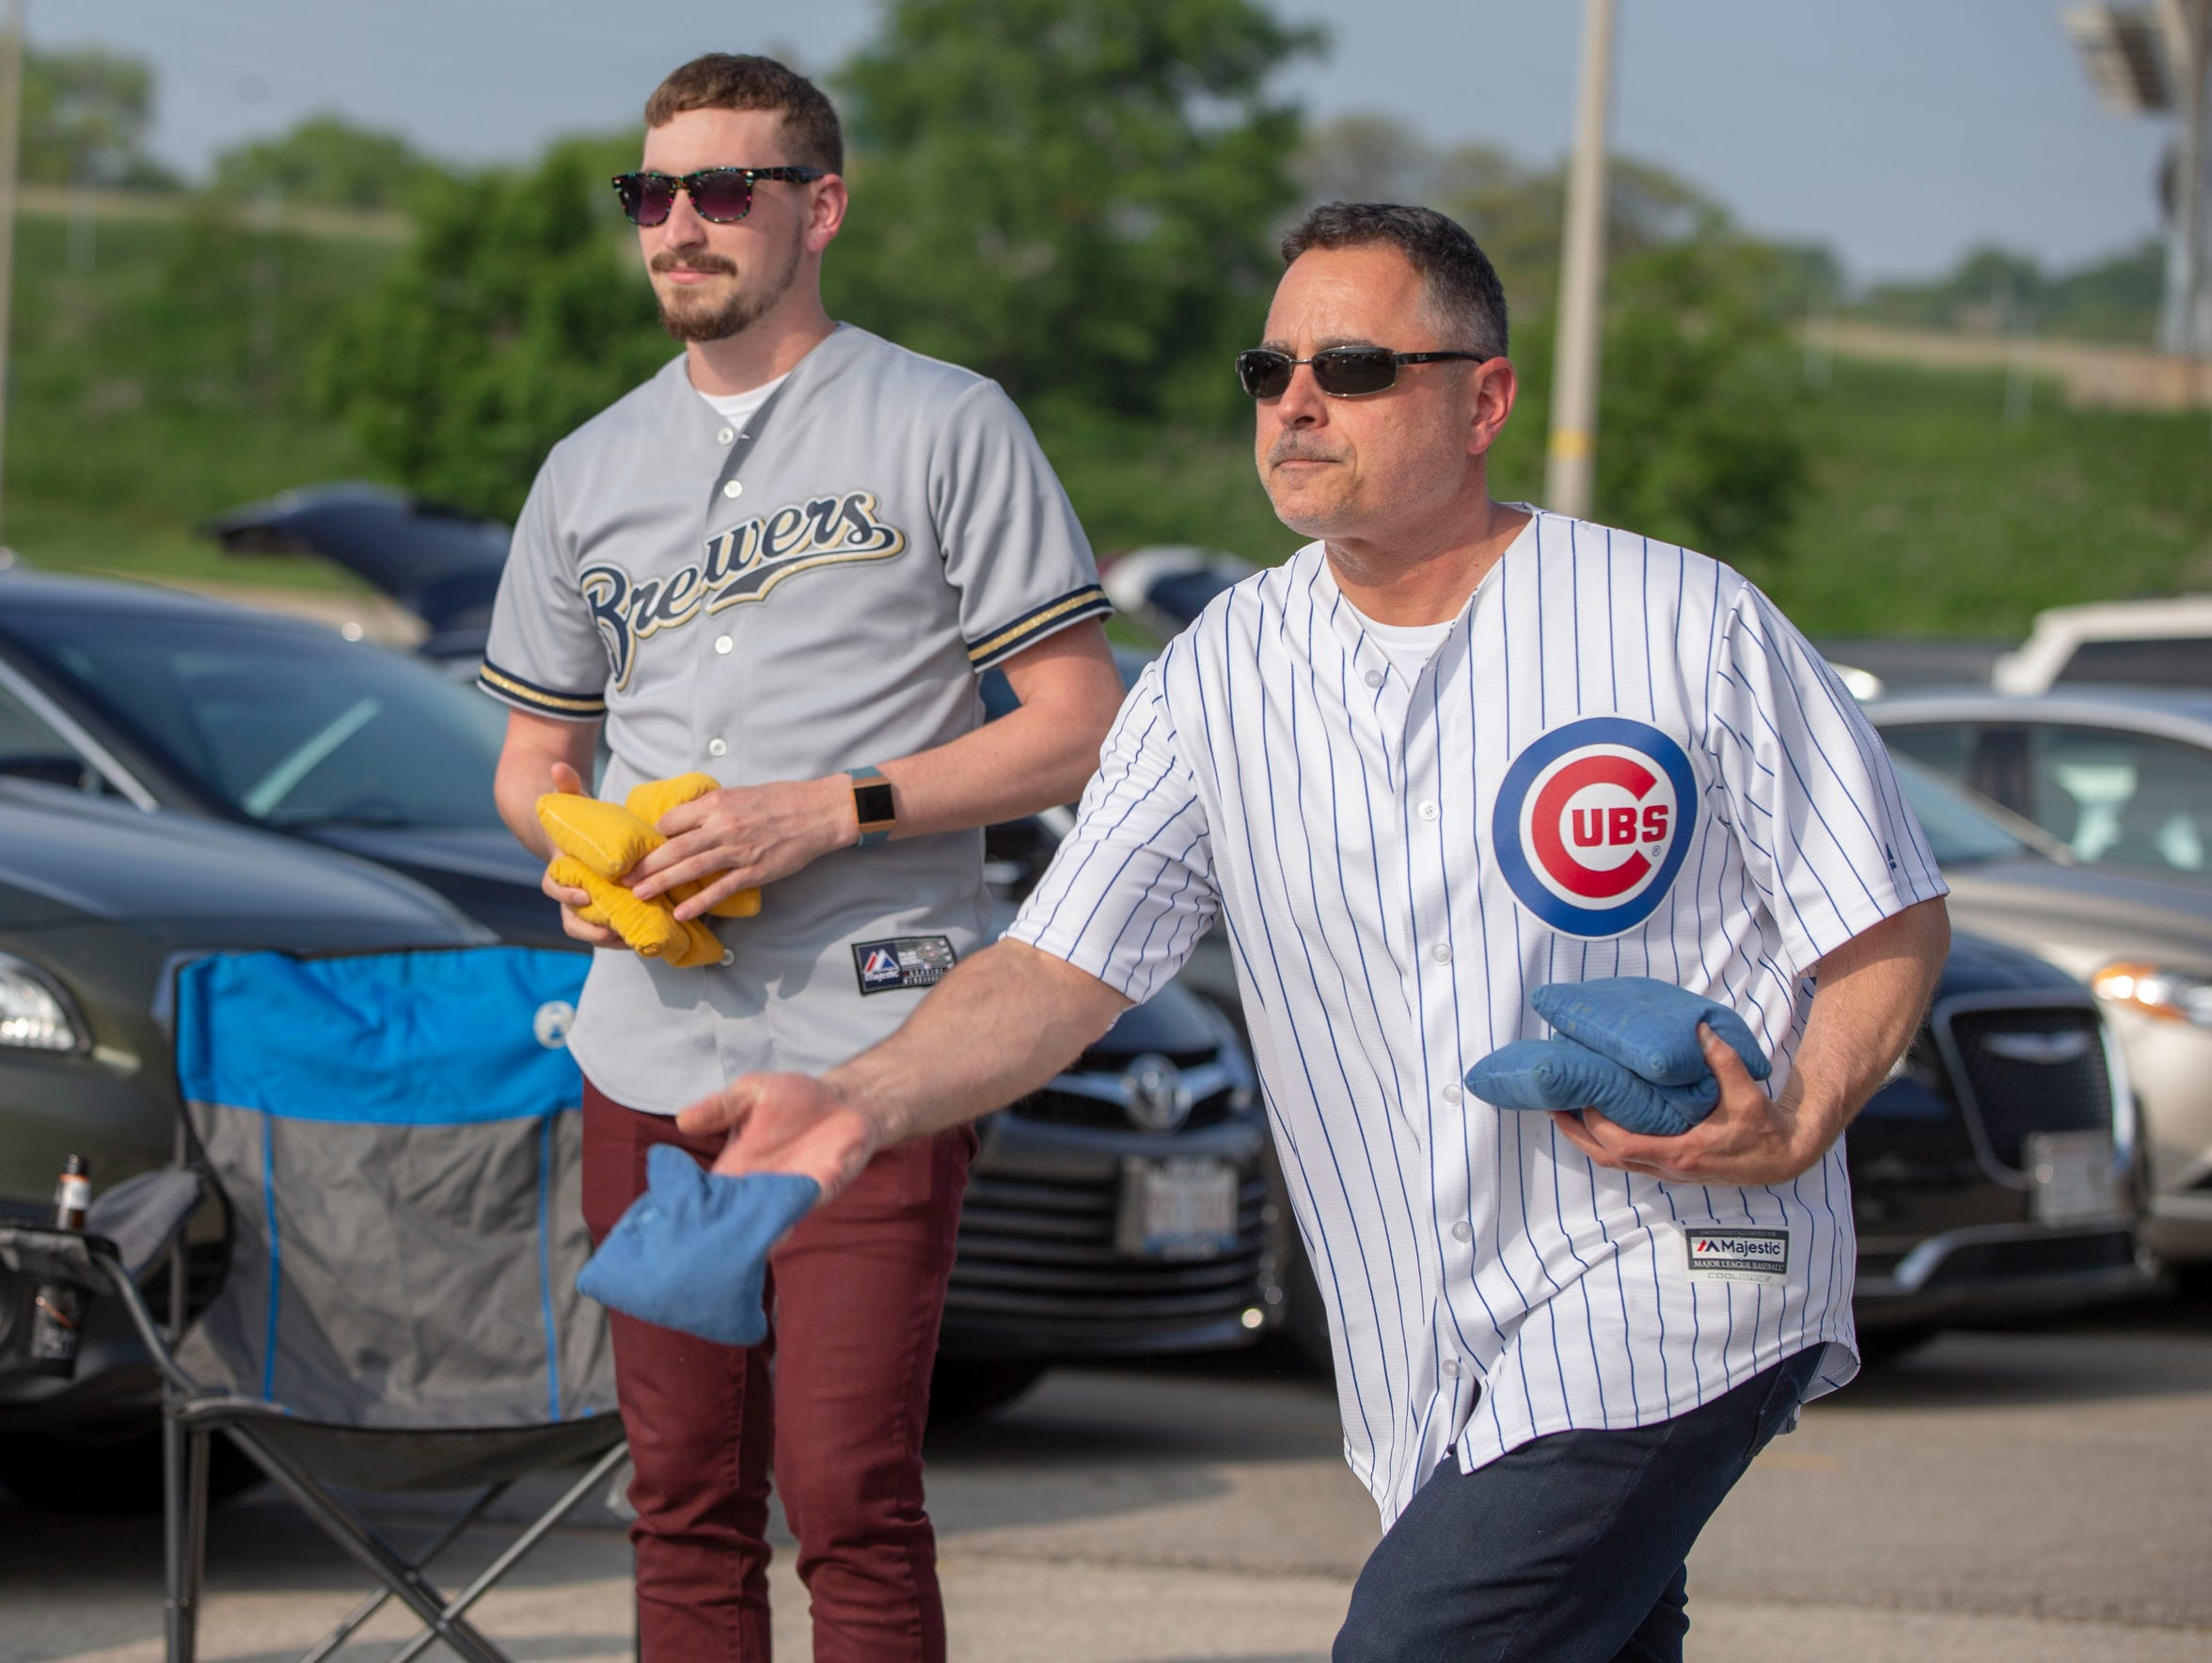 Mike Arrichiello of Milwaukee sports a Cubs jersey